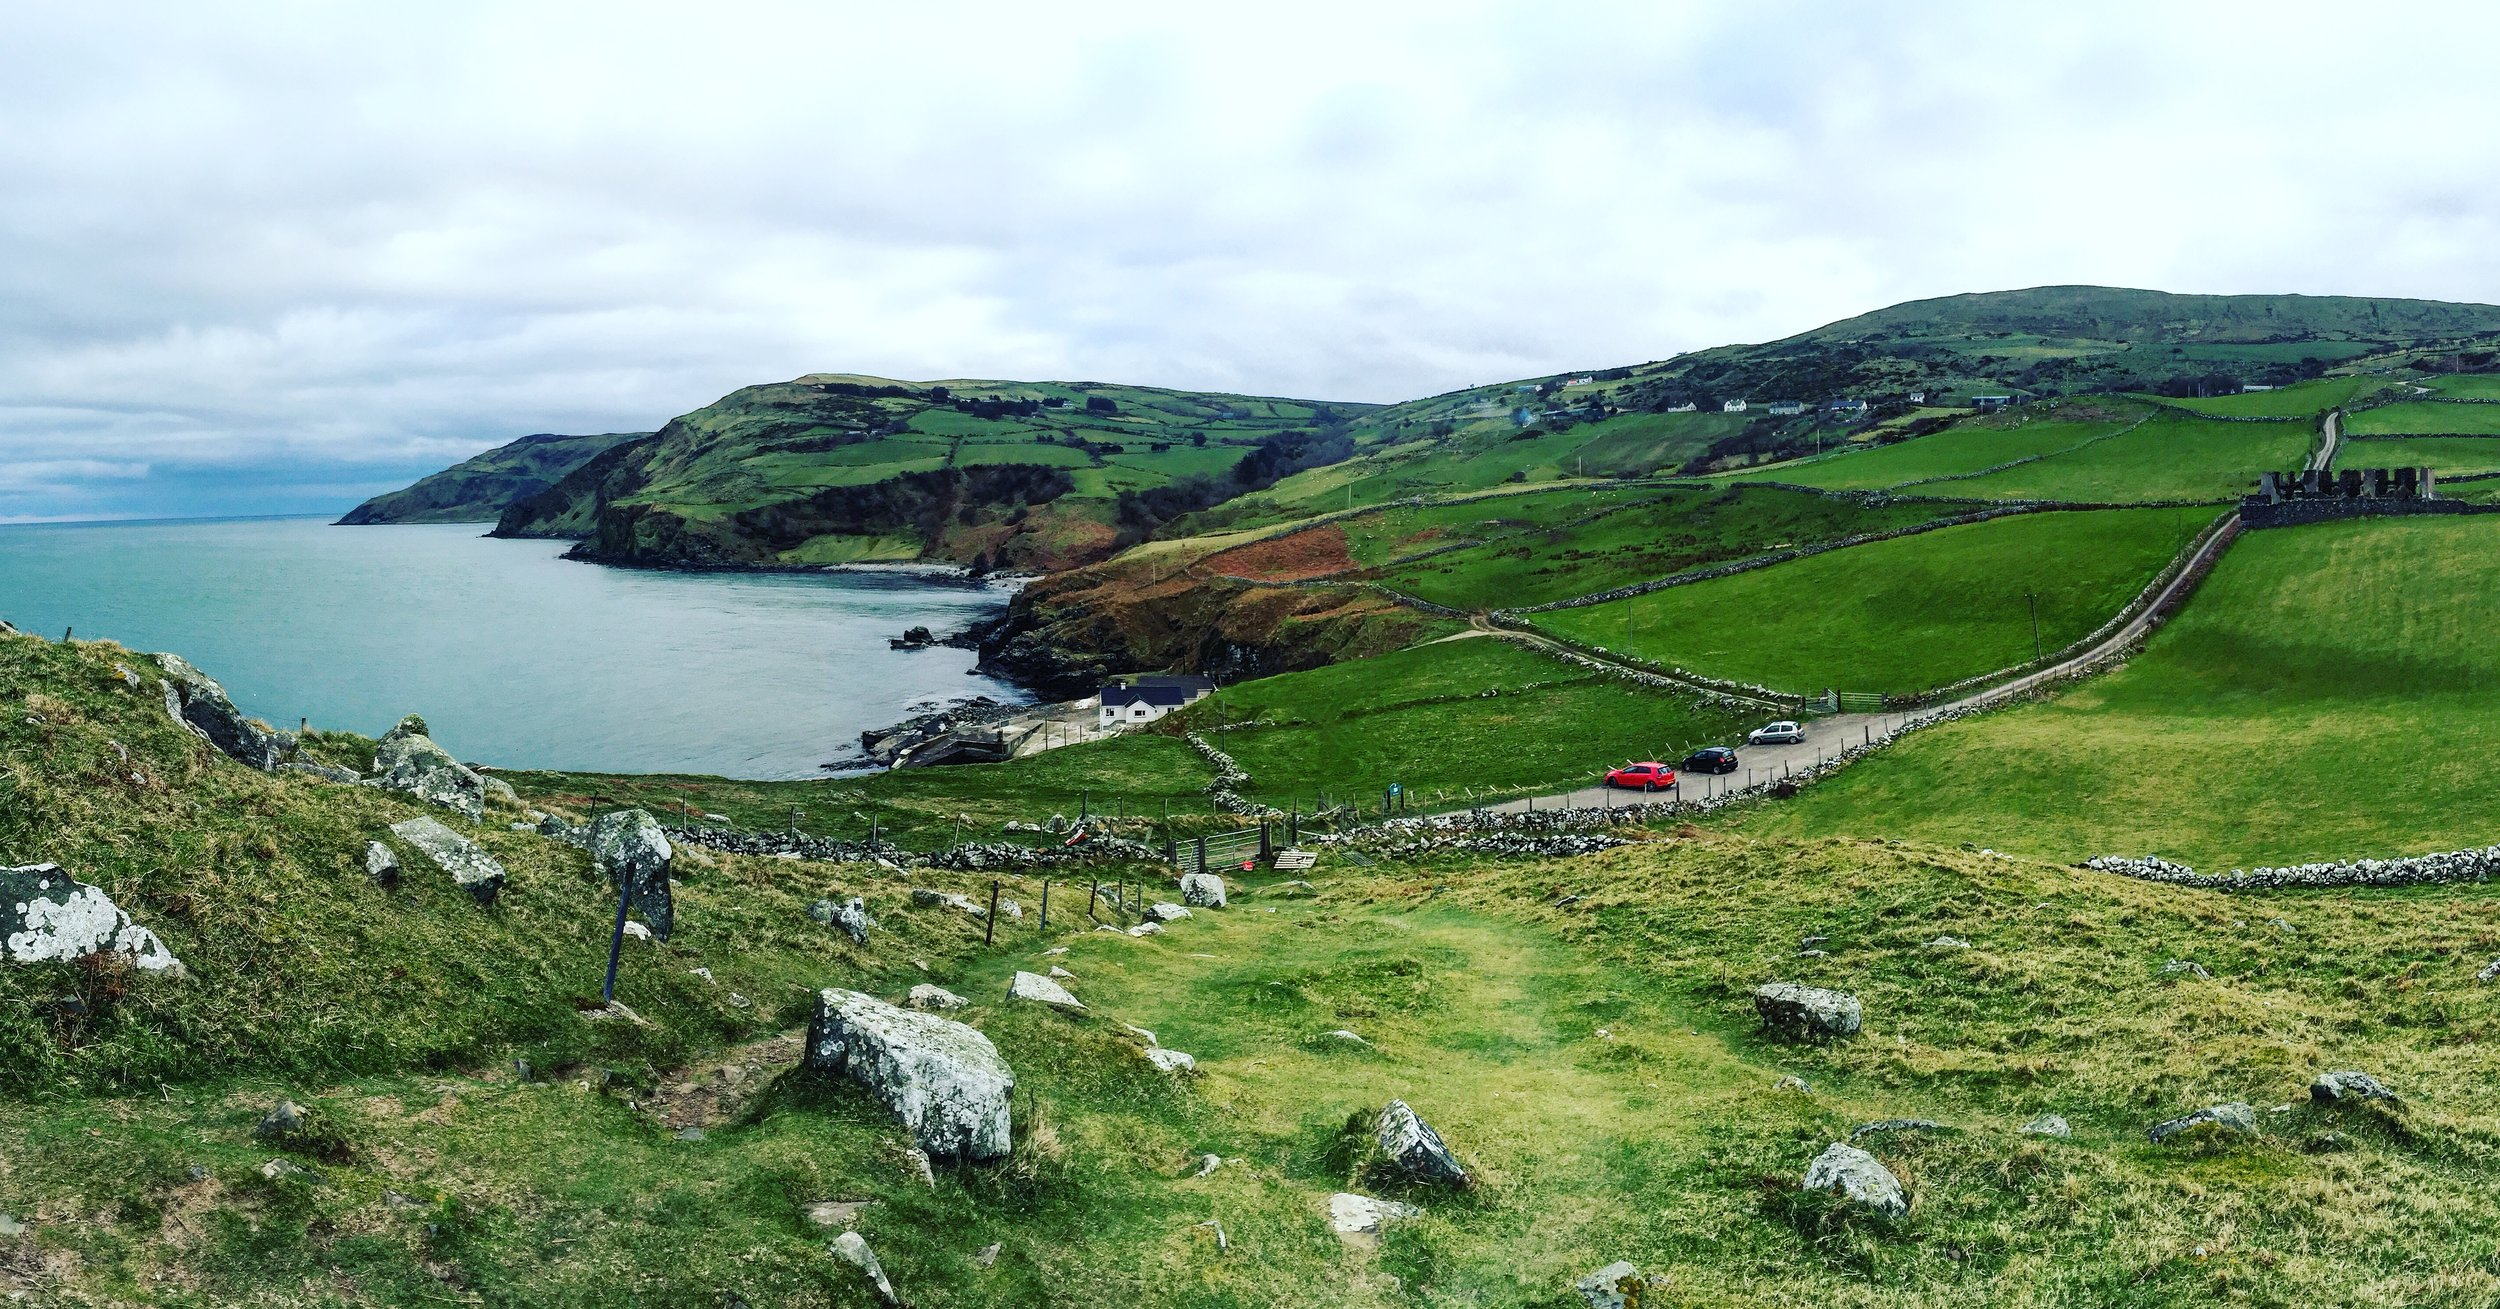 green_panorama_land_torr_head_ni_explorer_niexplorer_northern_ireland_blog.jpg